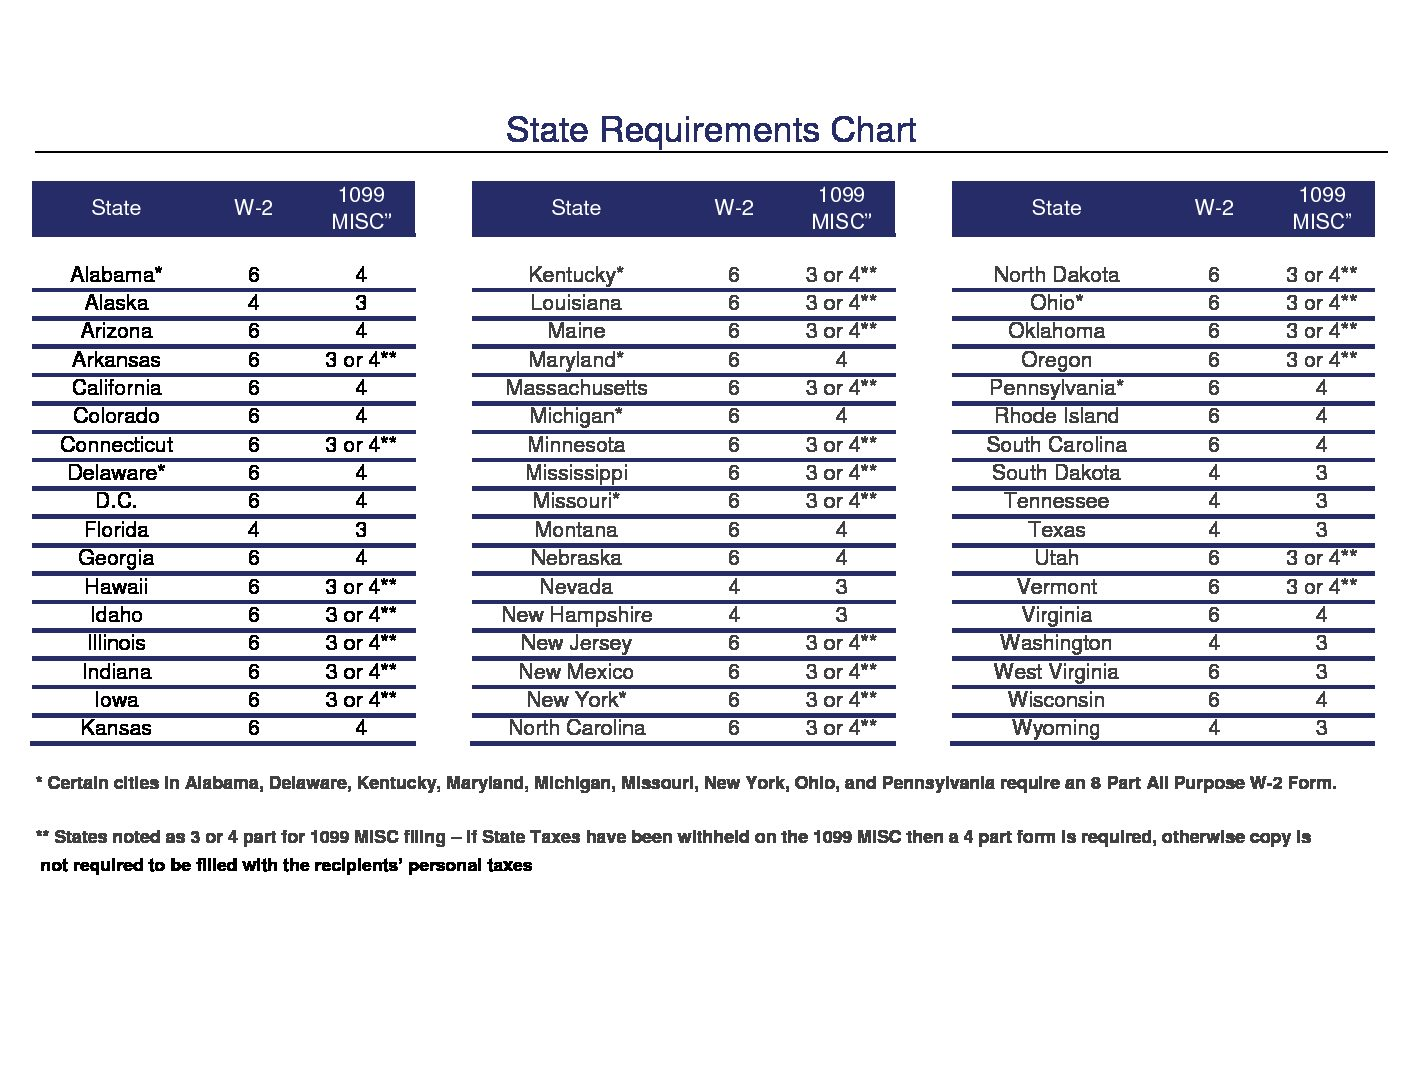 W-2 and 1099 Requirements by State